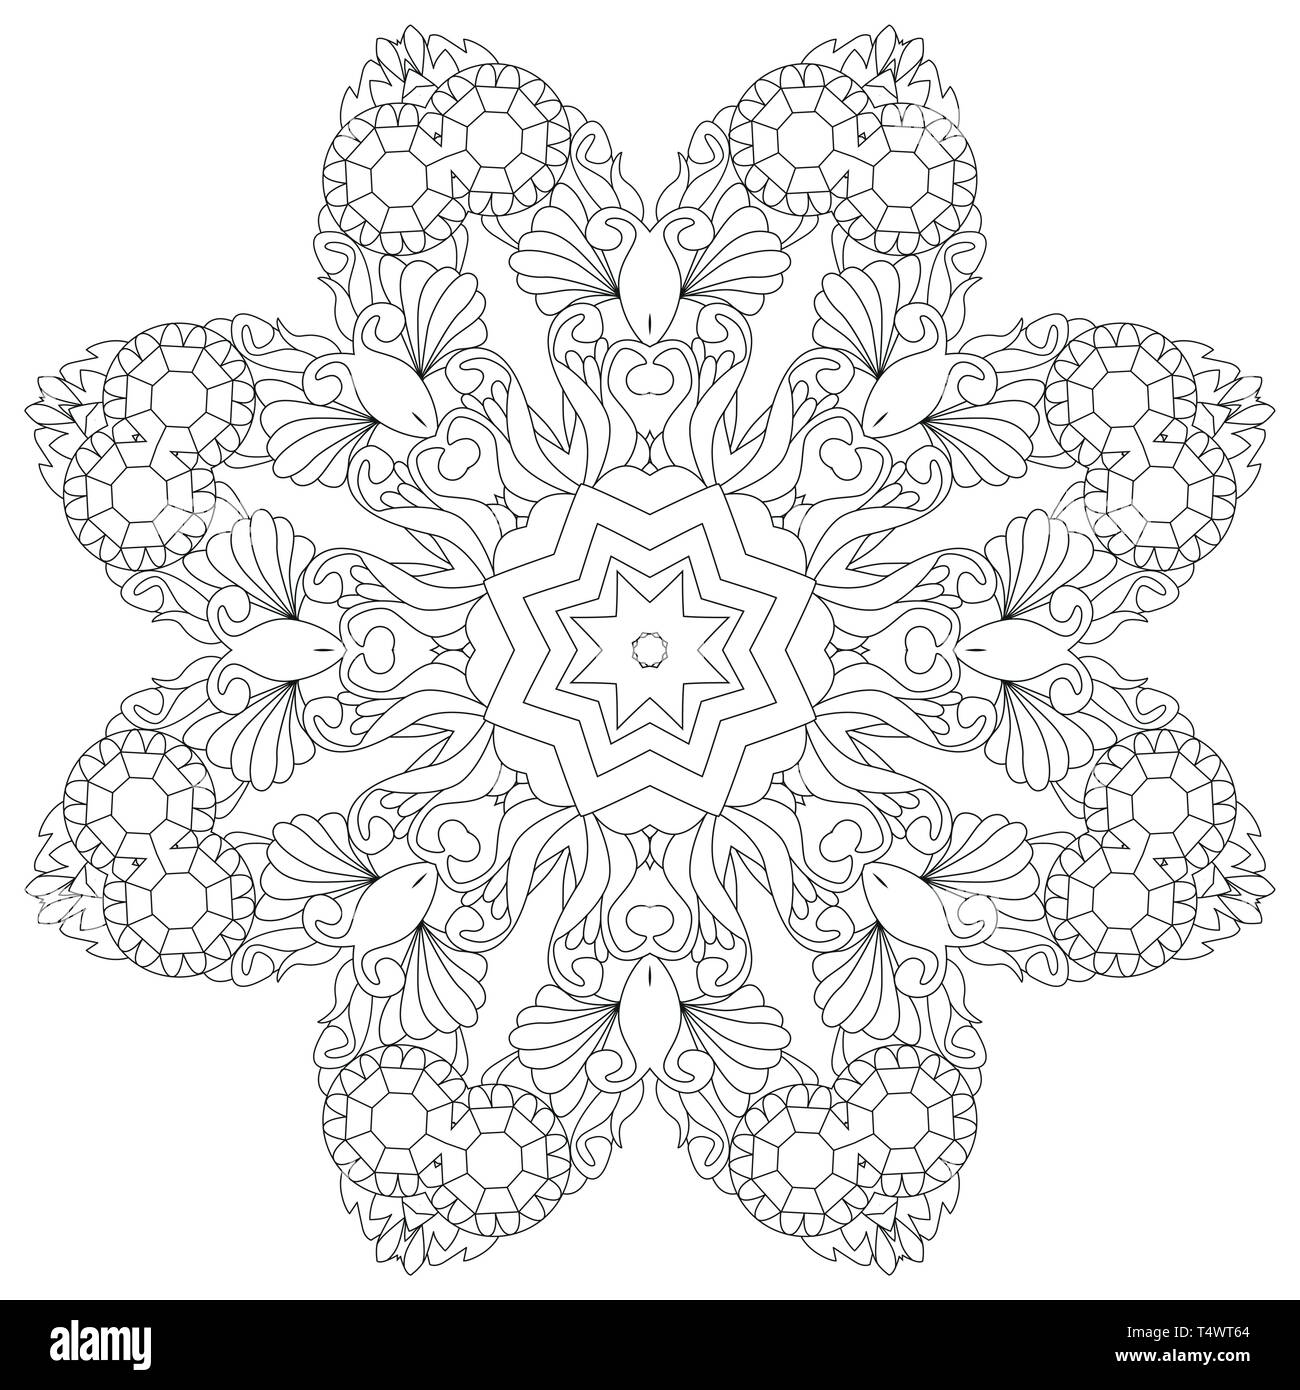 Vector Adult Coloring Book Textures. Hand-painted art design ...